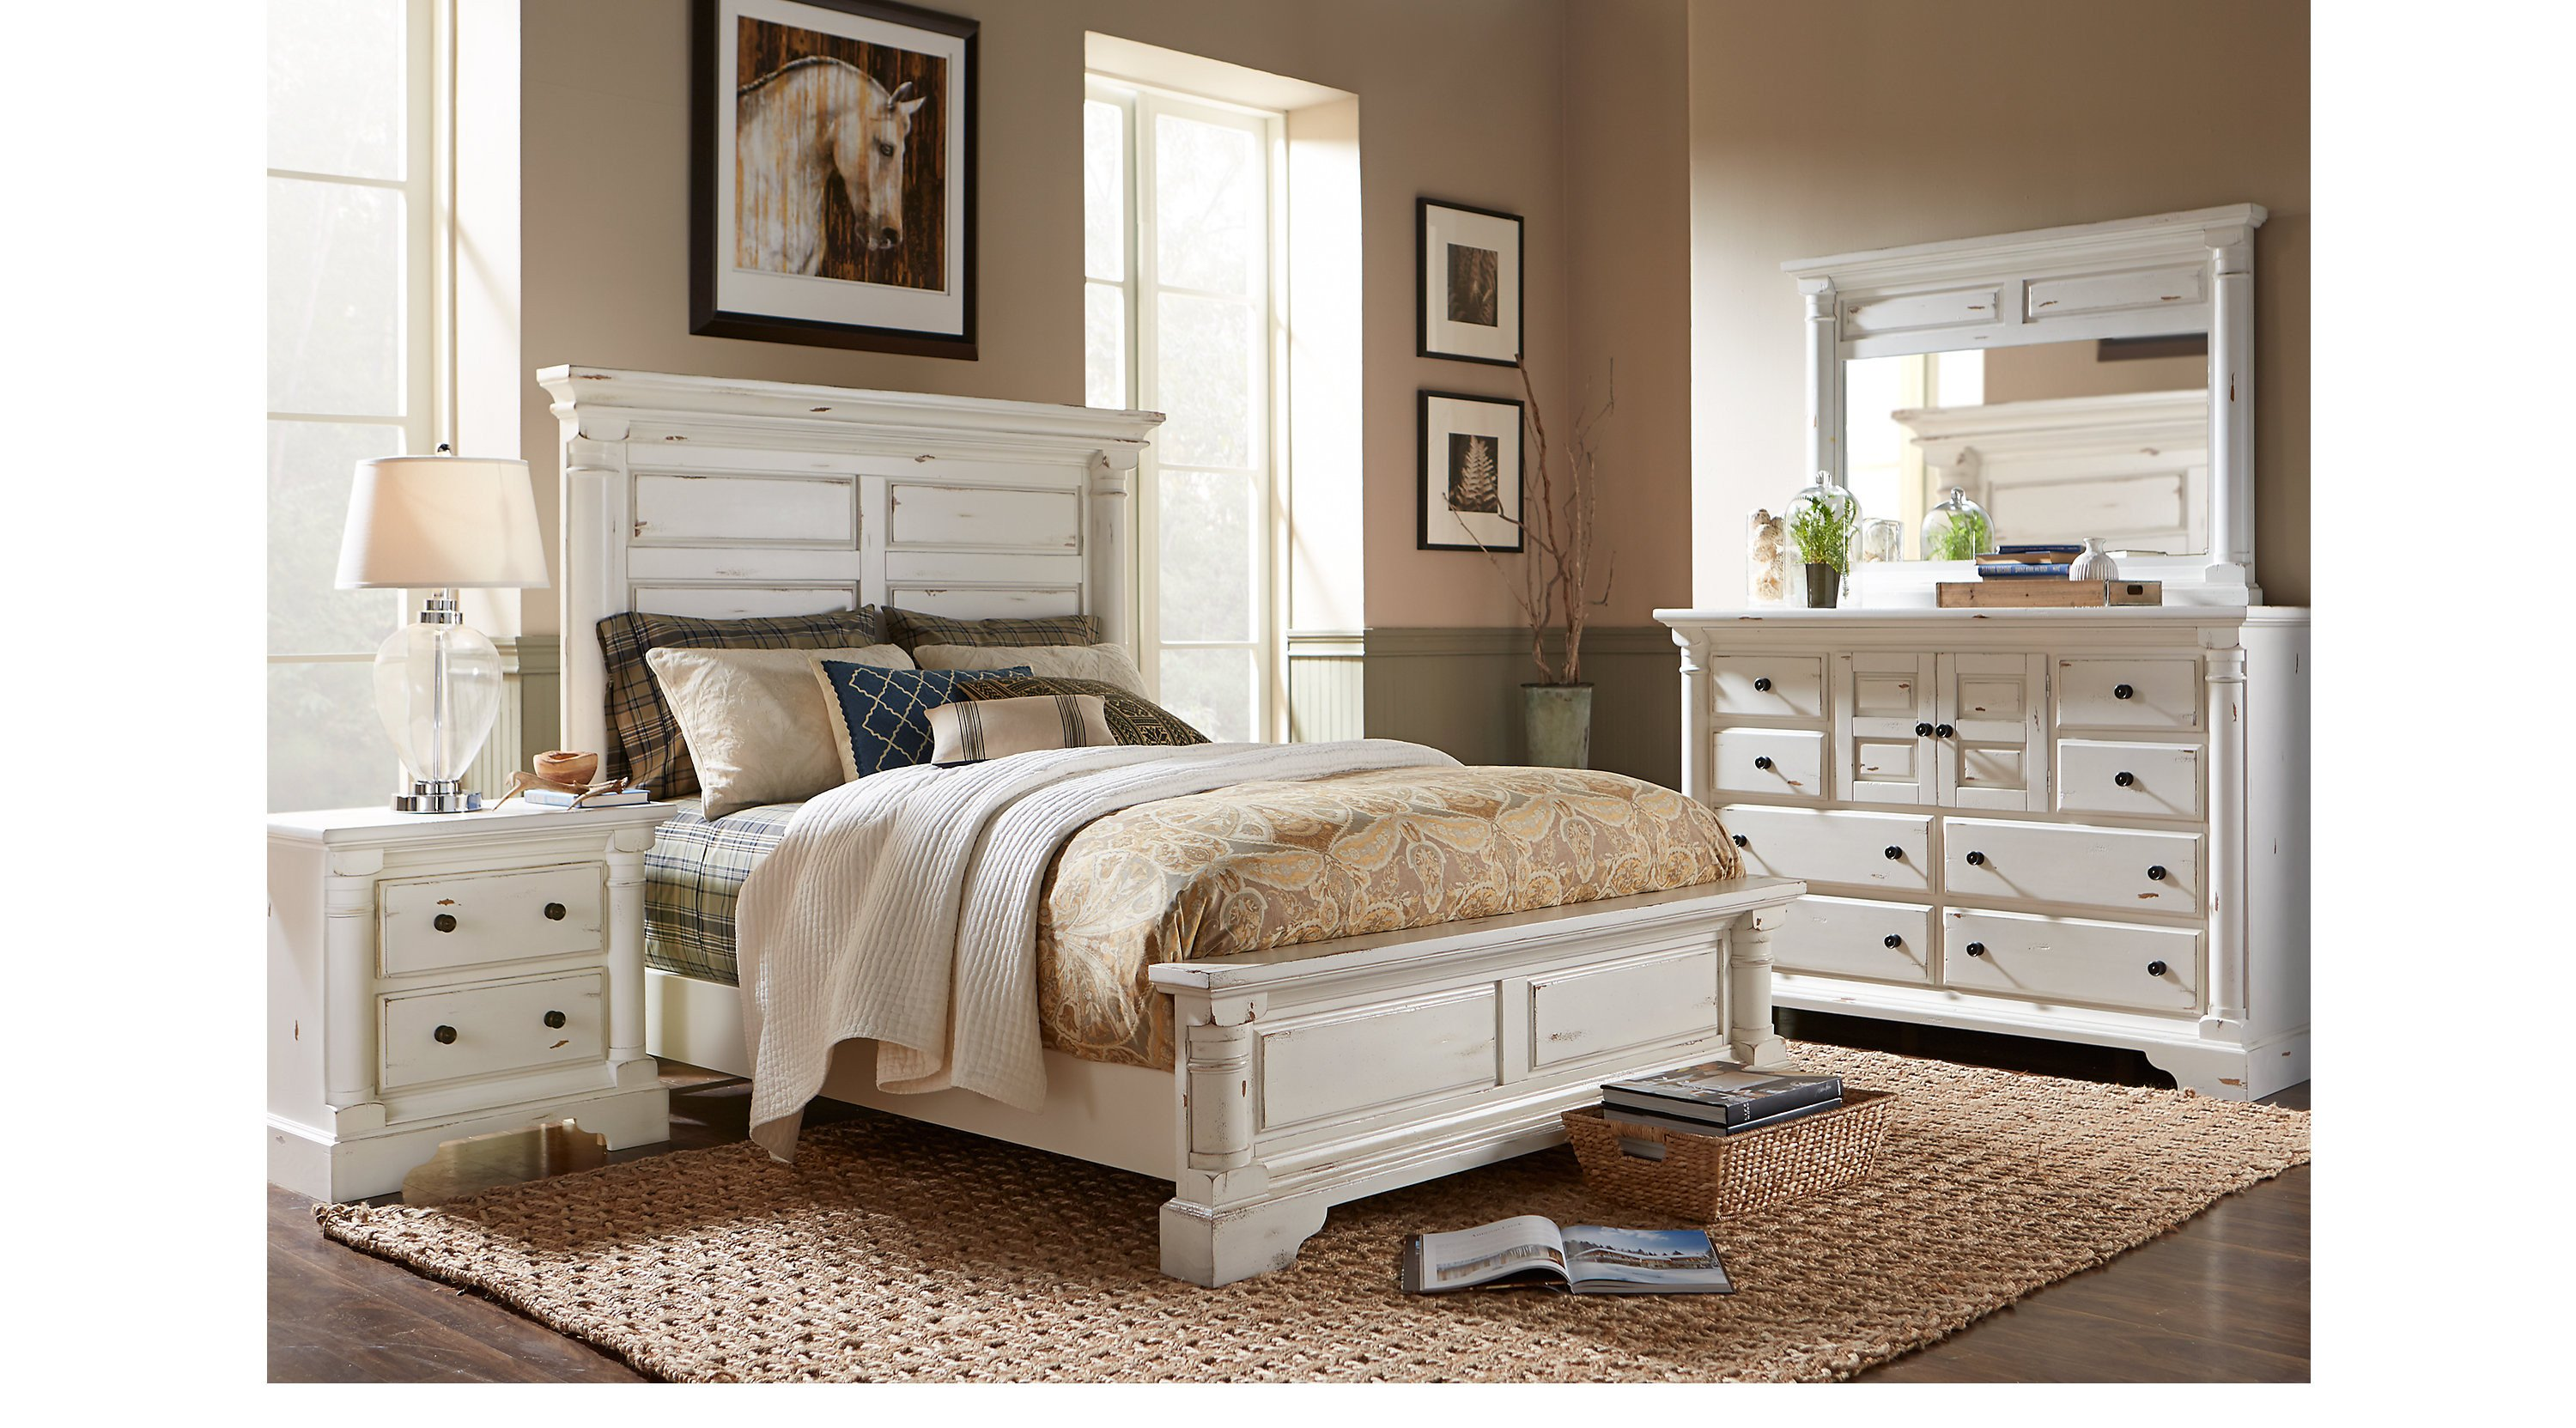 Girls Bedroom Furniture Set Fresh Bestpriceshooversteamvacreplacementp Luxury Bed Back Wall